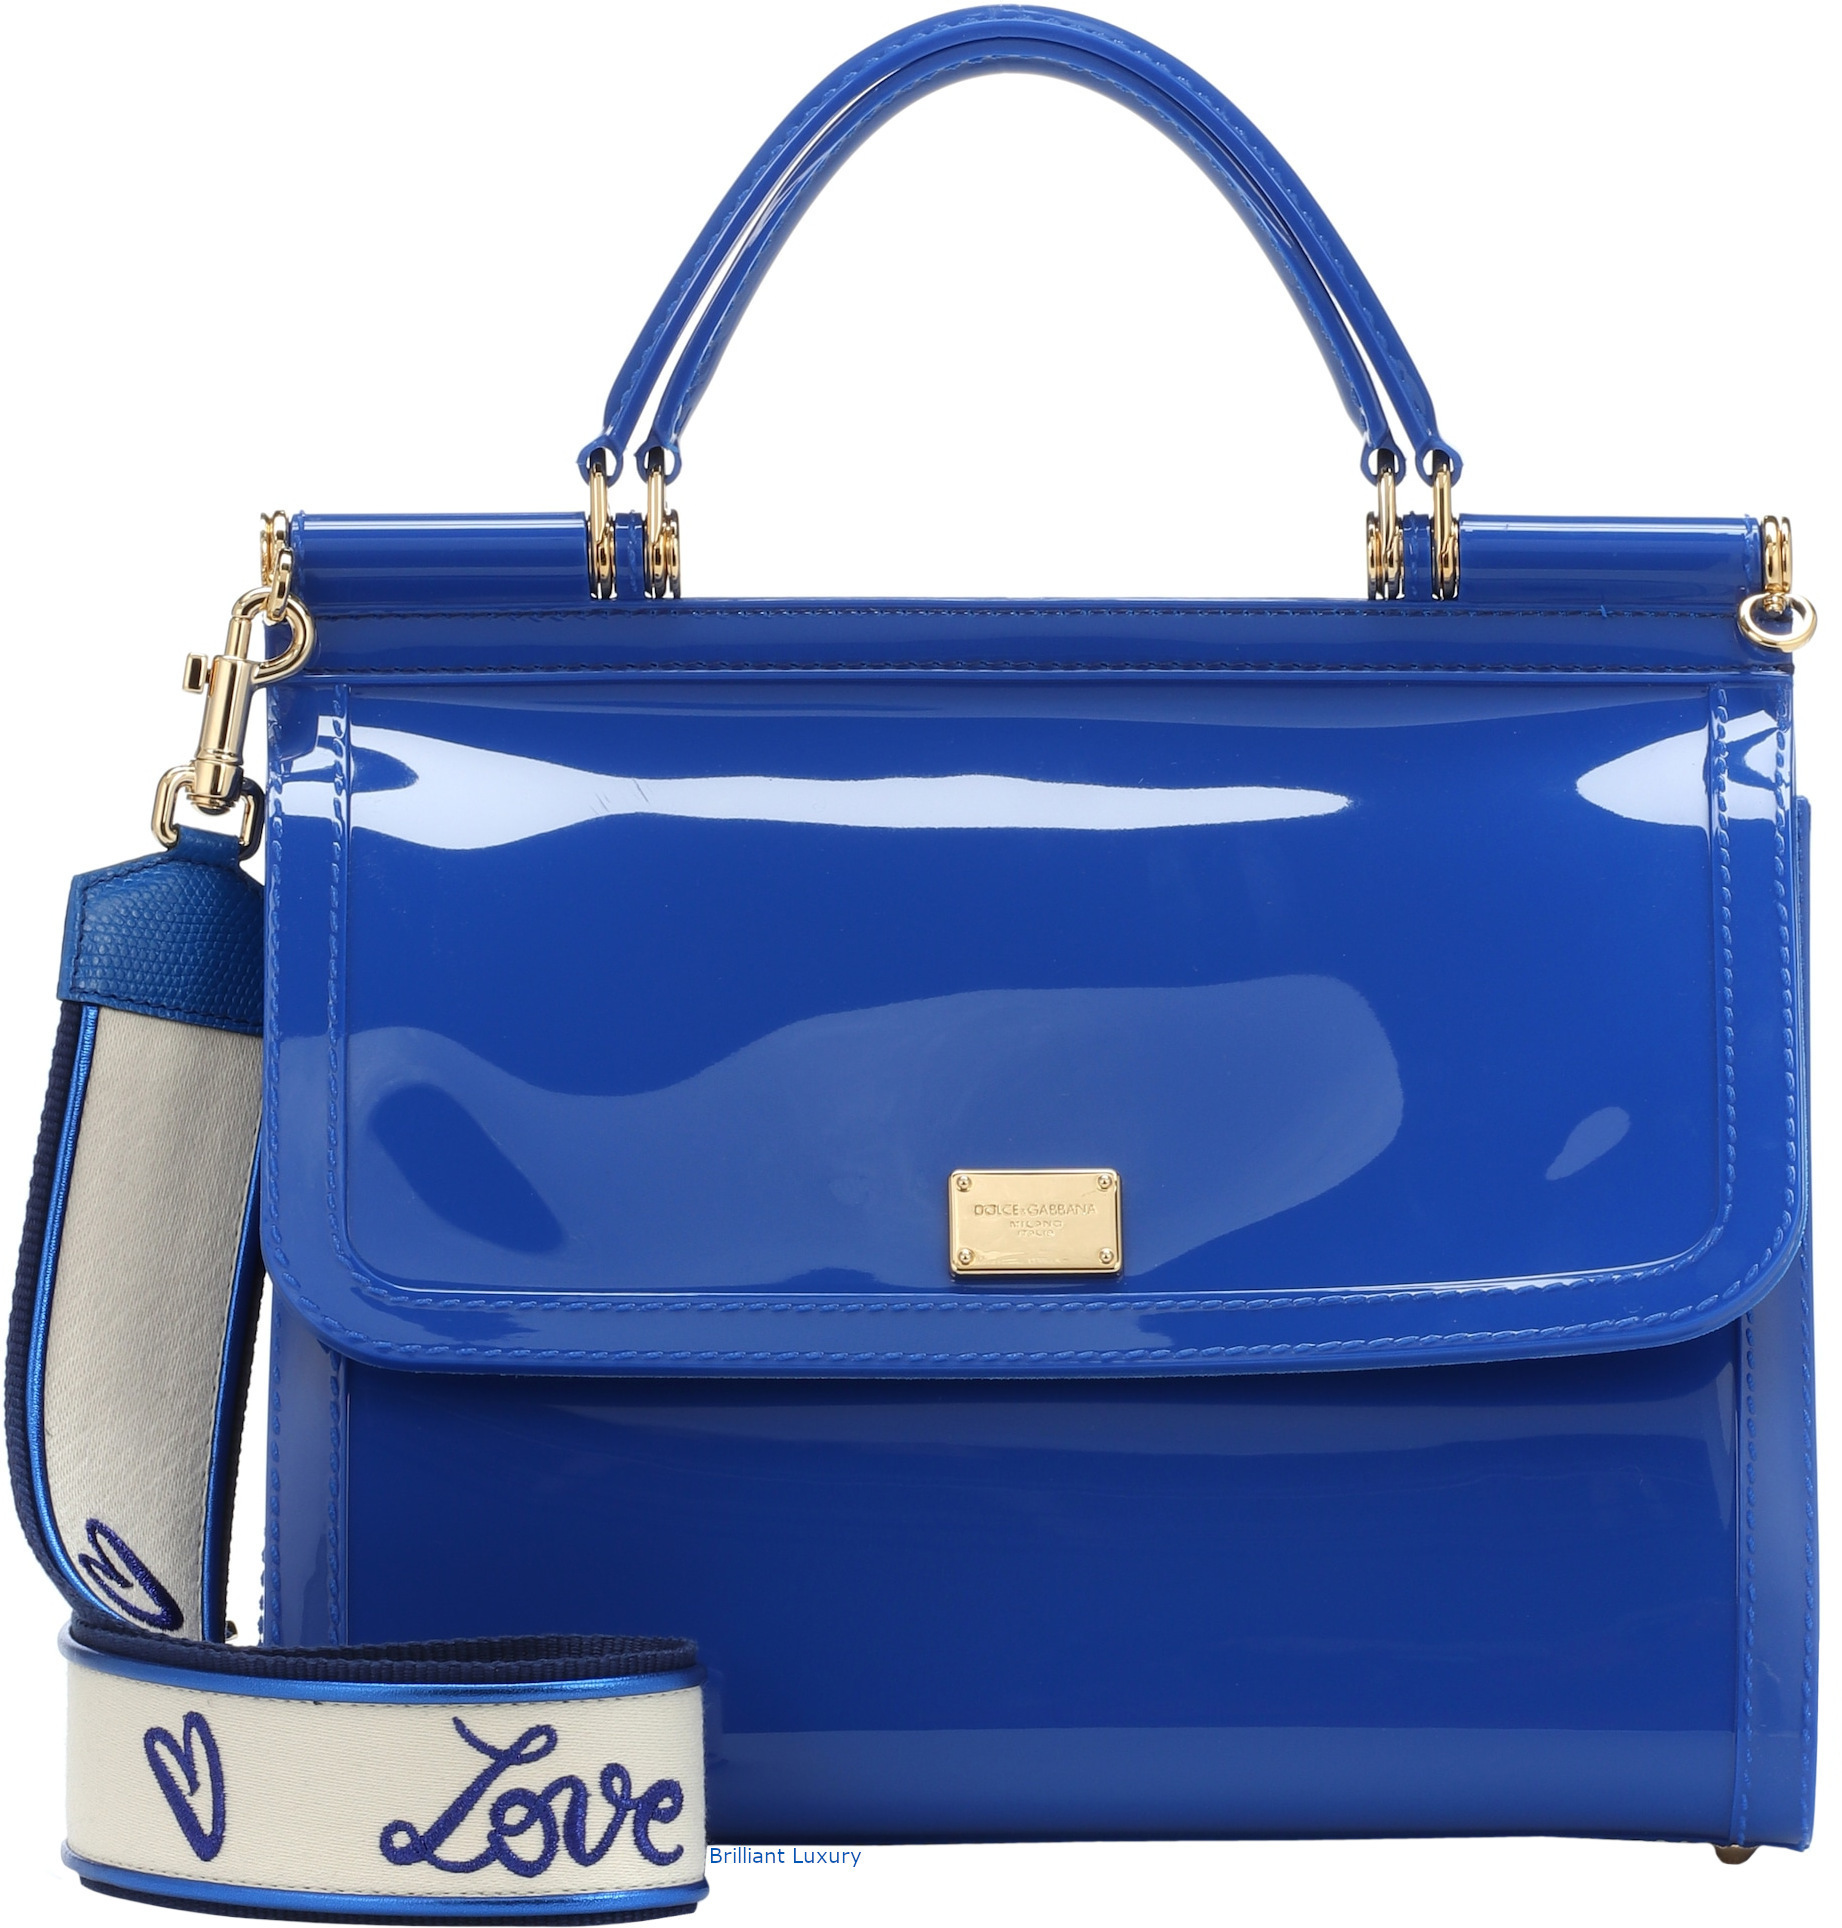 Dolce & Gabbana Sicily PVC shoulder bag in Pantone Princess Blue